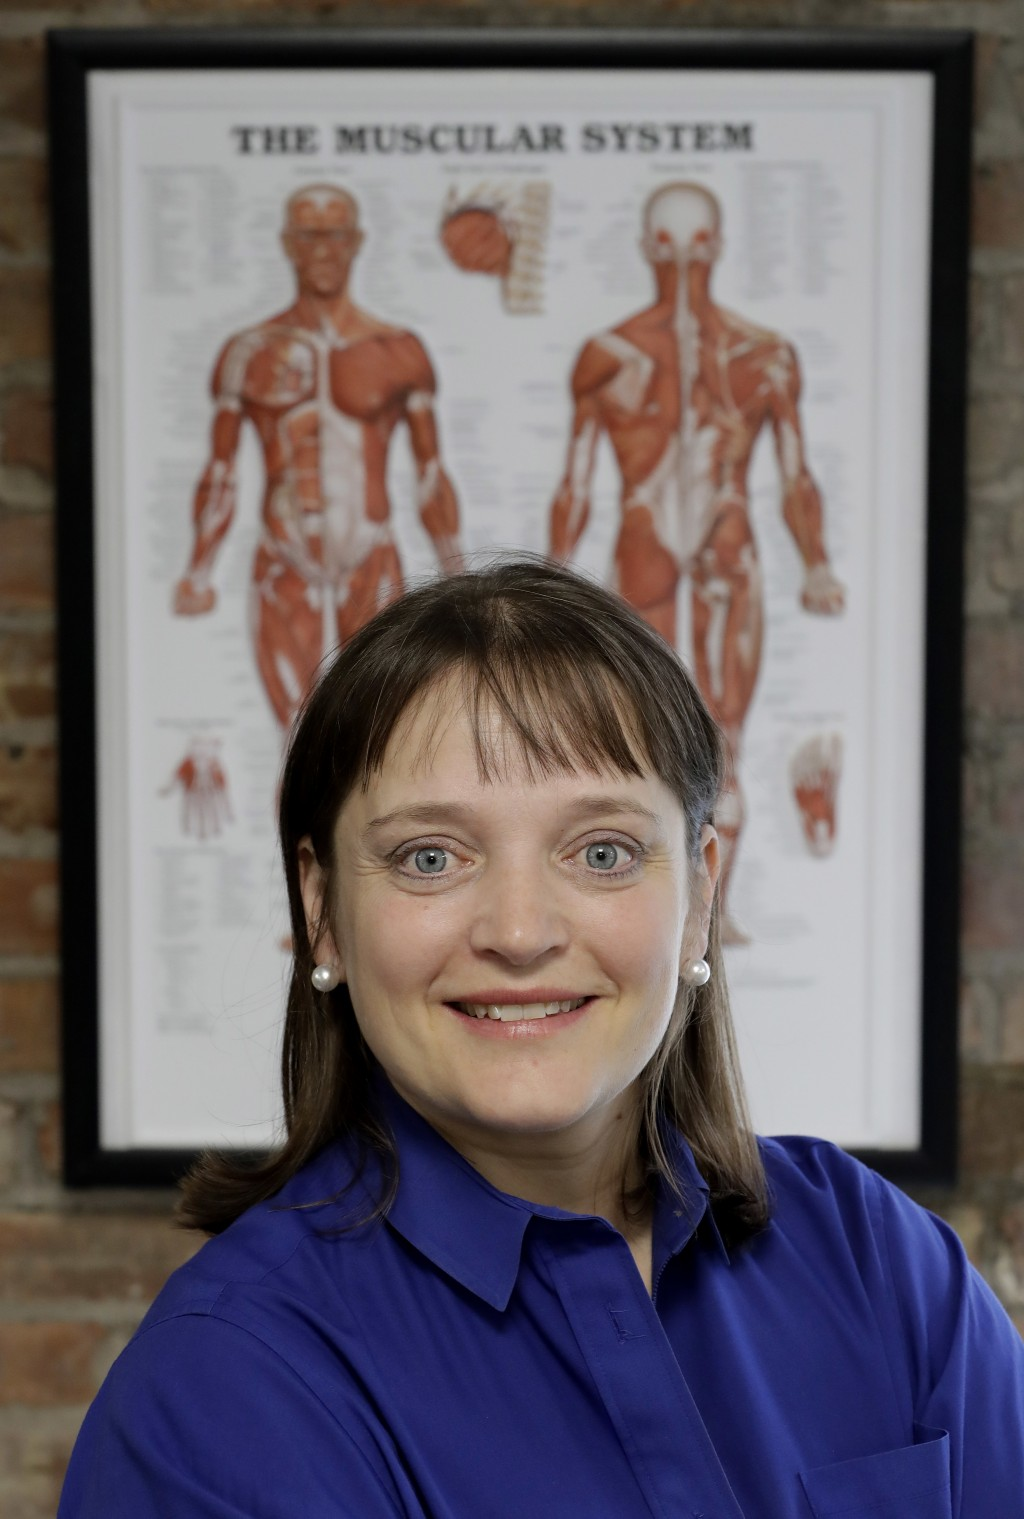 In this Saturday, May 12, 2018, photo, April Oury, owner of Body Gears physical therapy center poses for a portrait at on of her centers in Chicago. O